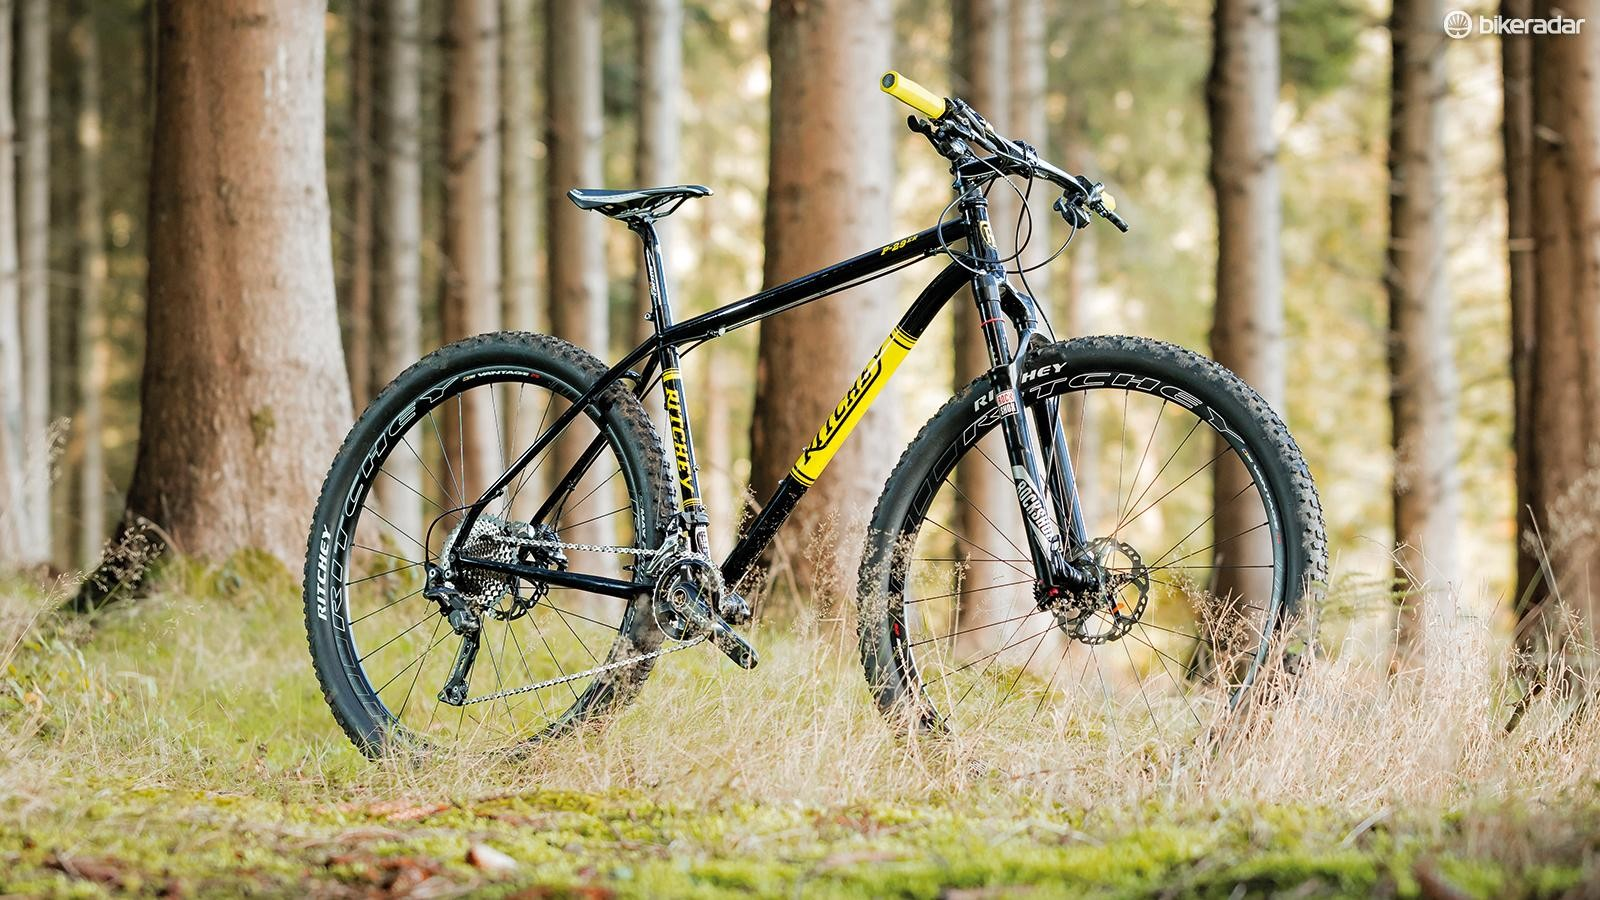 Ritchey's steel P-29er hardtail